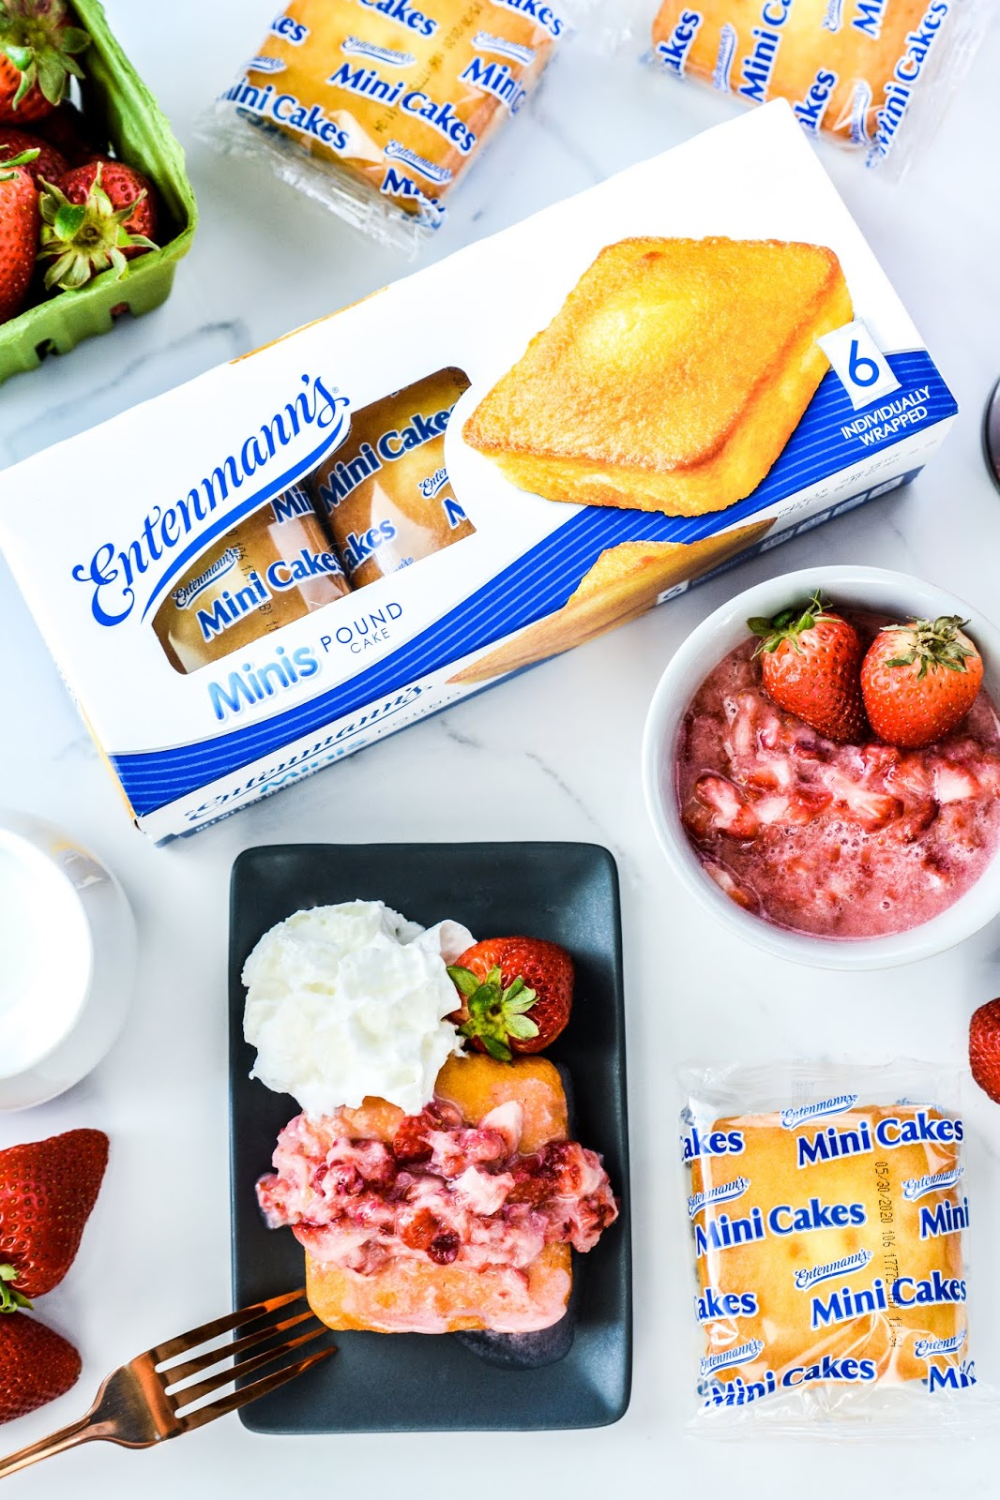 Celebrate Spring with Entenmann's Minis + Strawberry Shortcake for 1 recipe #sponsored #Entenmanns #SweetMemoriesSweepstakes #giveaway